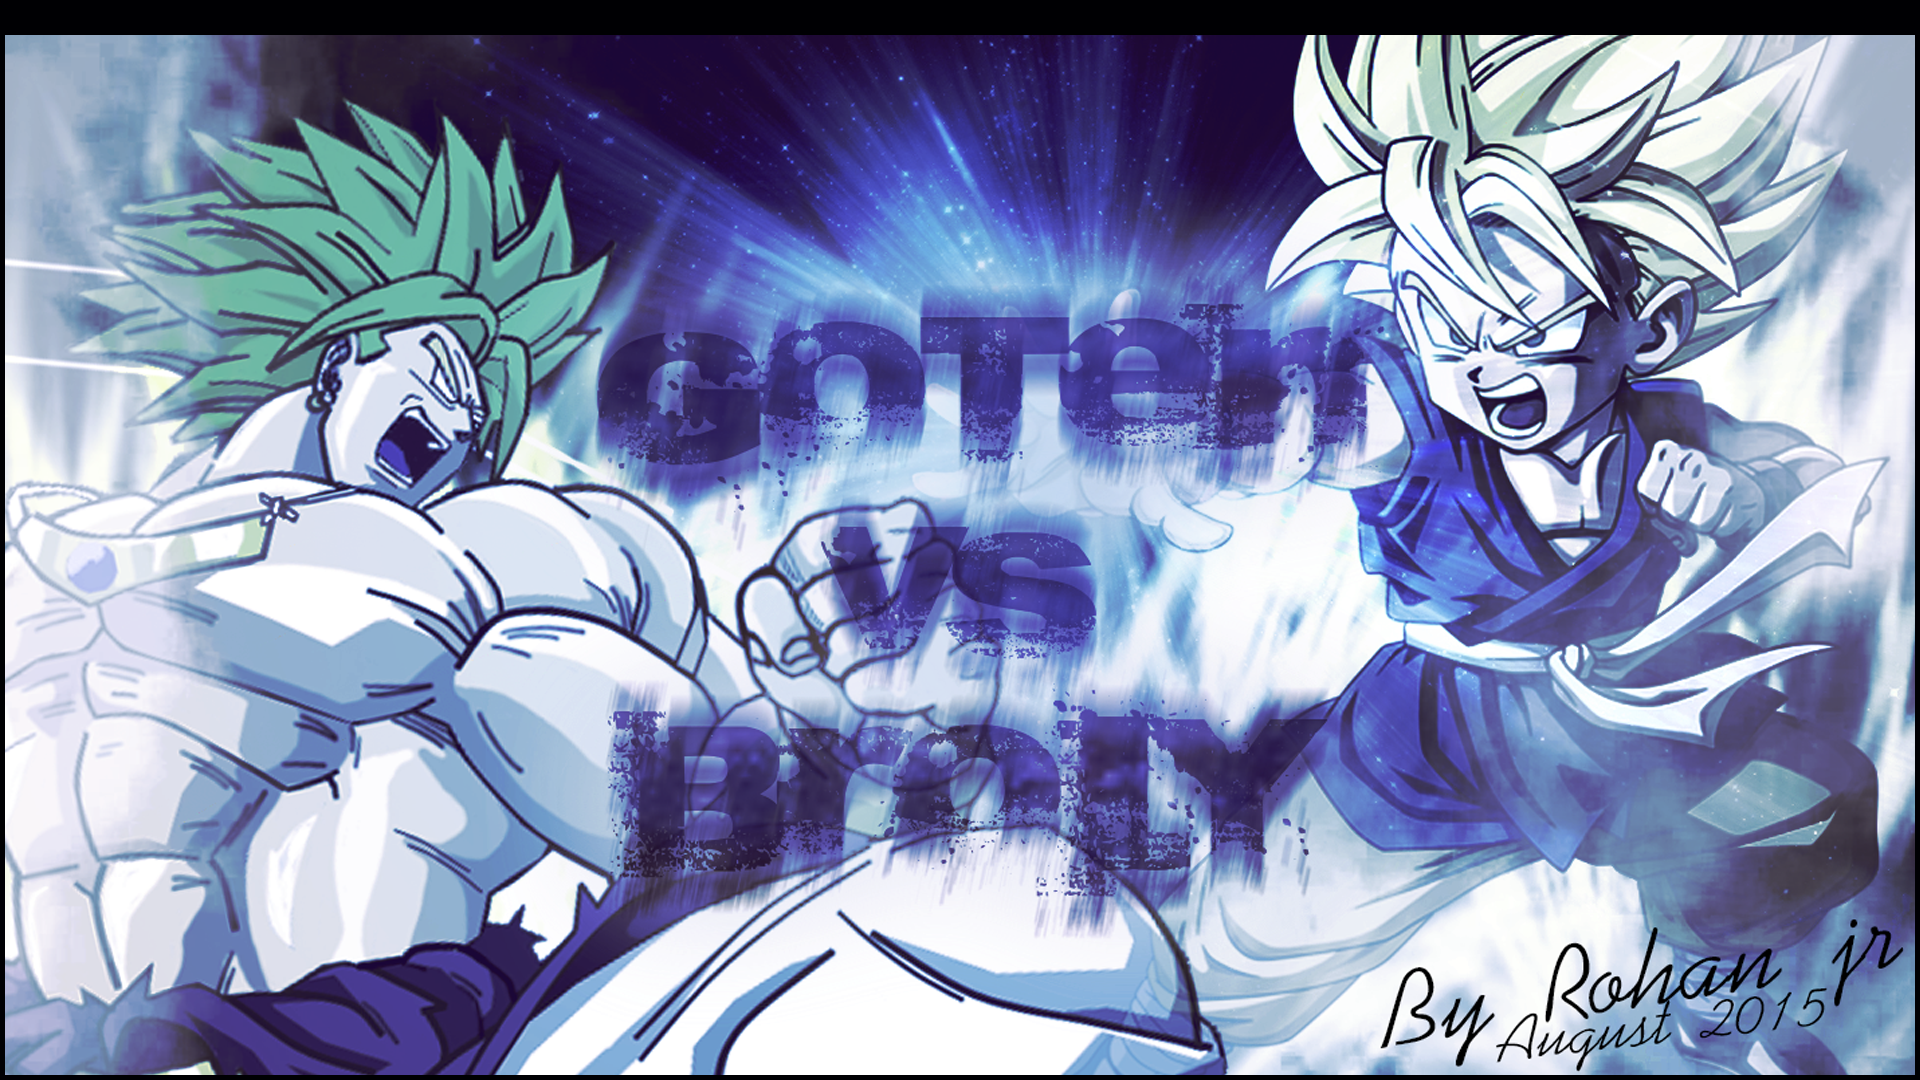 """Ma galerie """"d'oeuvres"""" dbz"""" - Page 2 150809020057653020"""